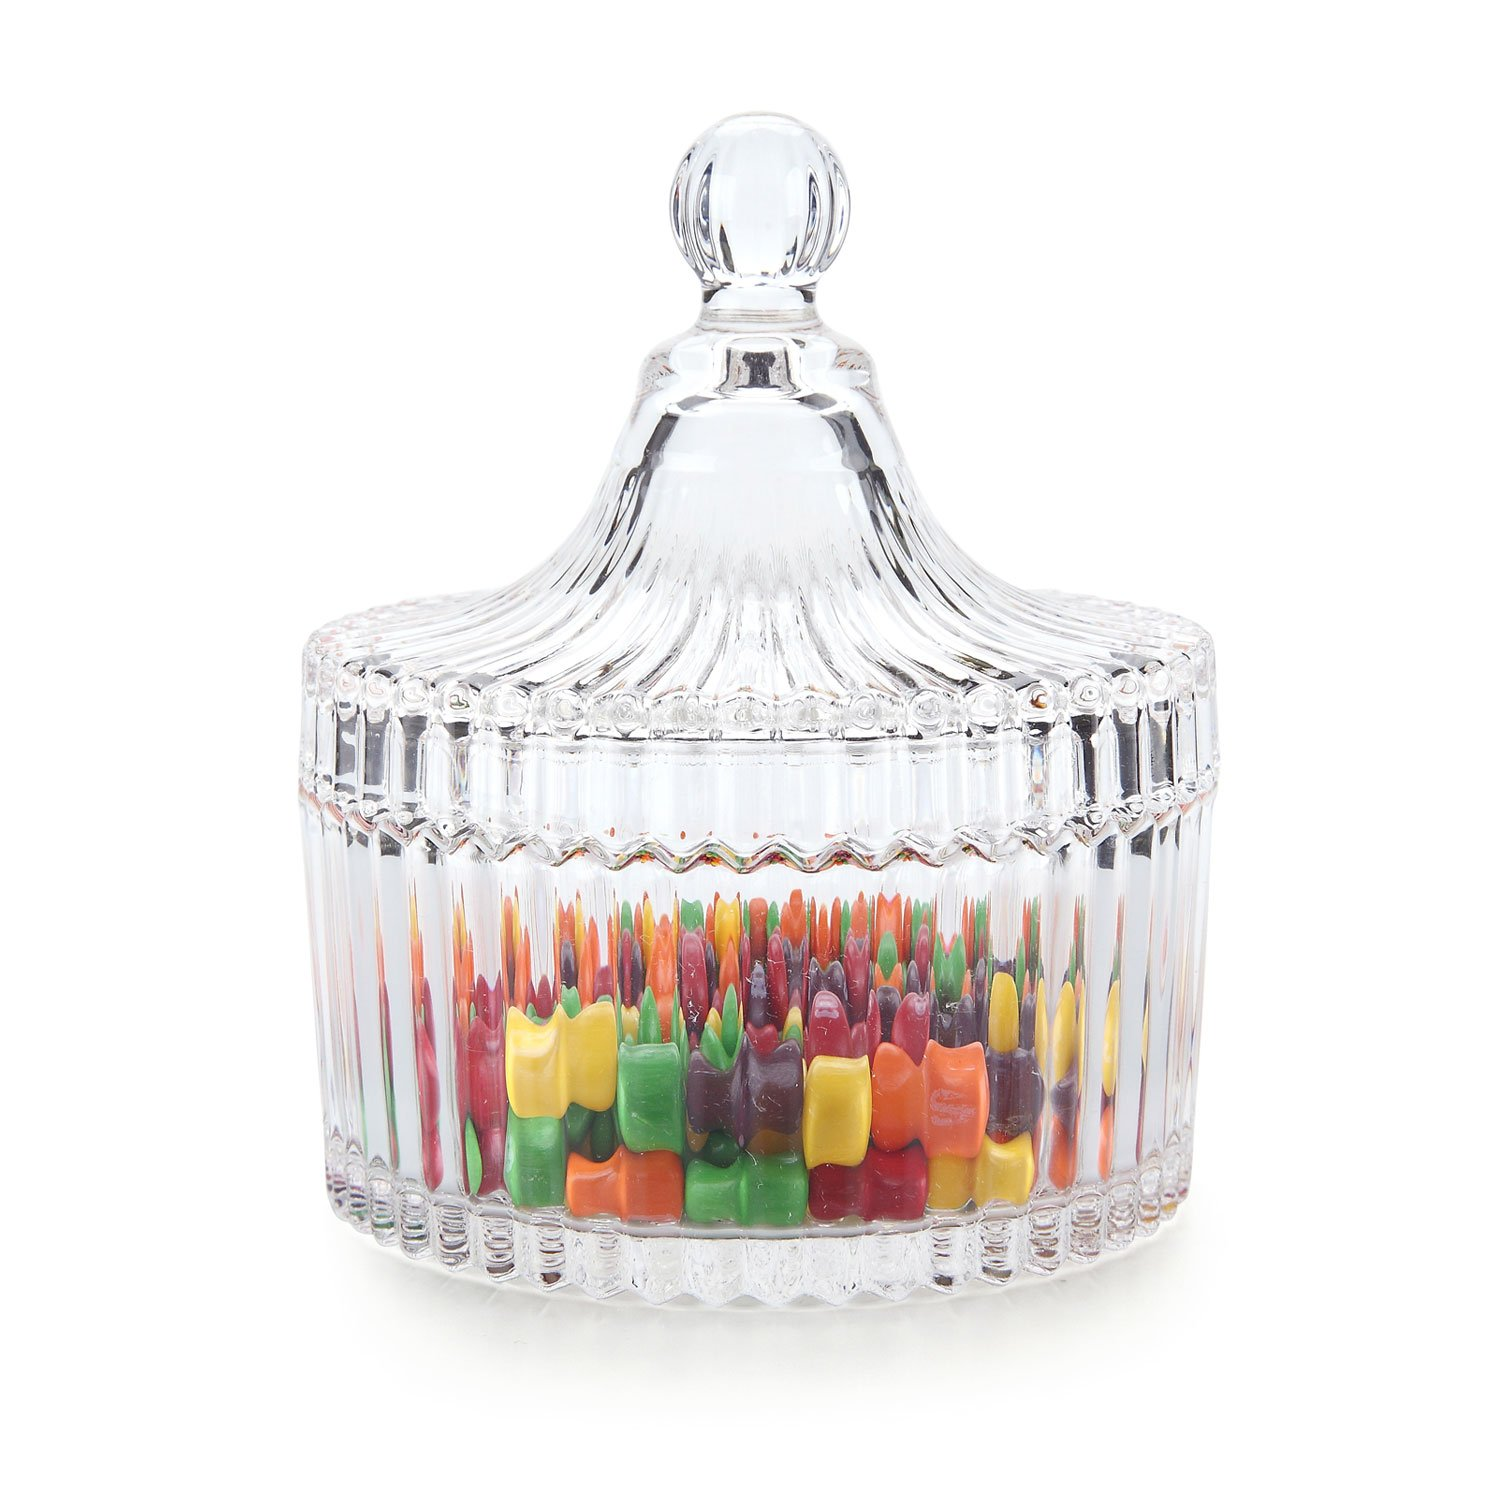 ComSaf Glass Covered Storage Jar Candy Dish Box (Diameter 5.3'')